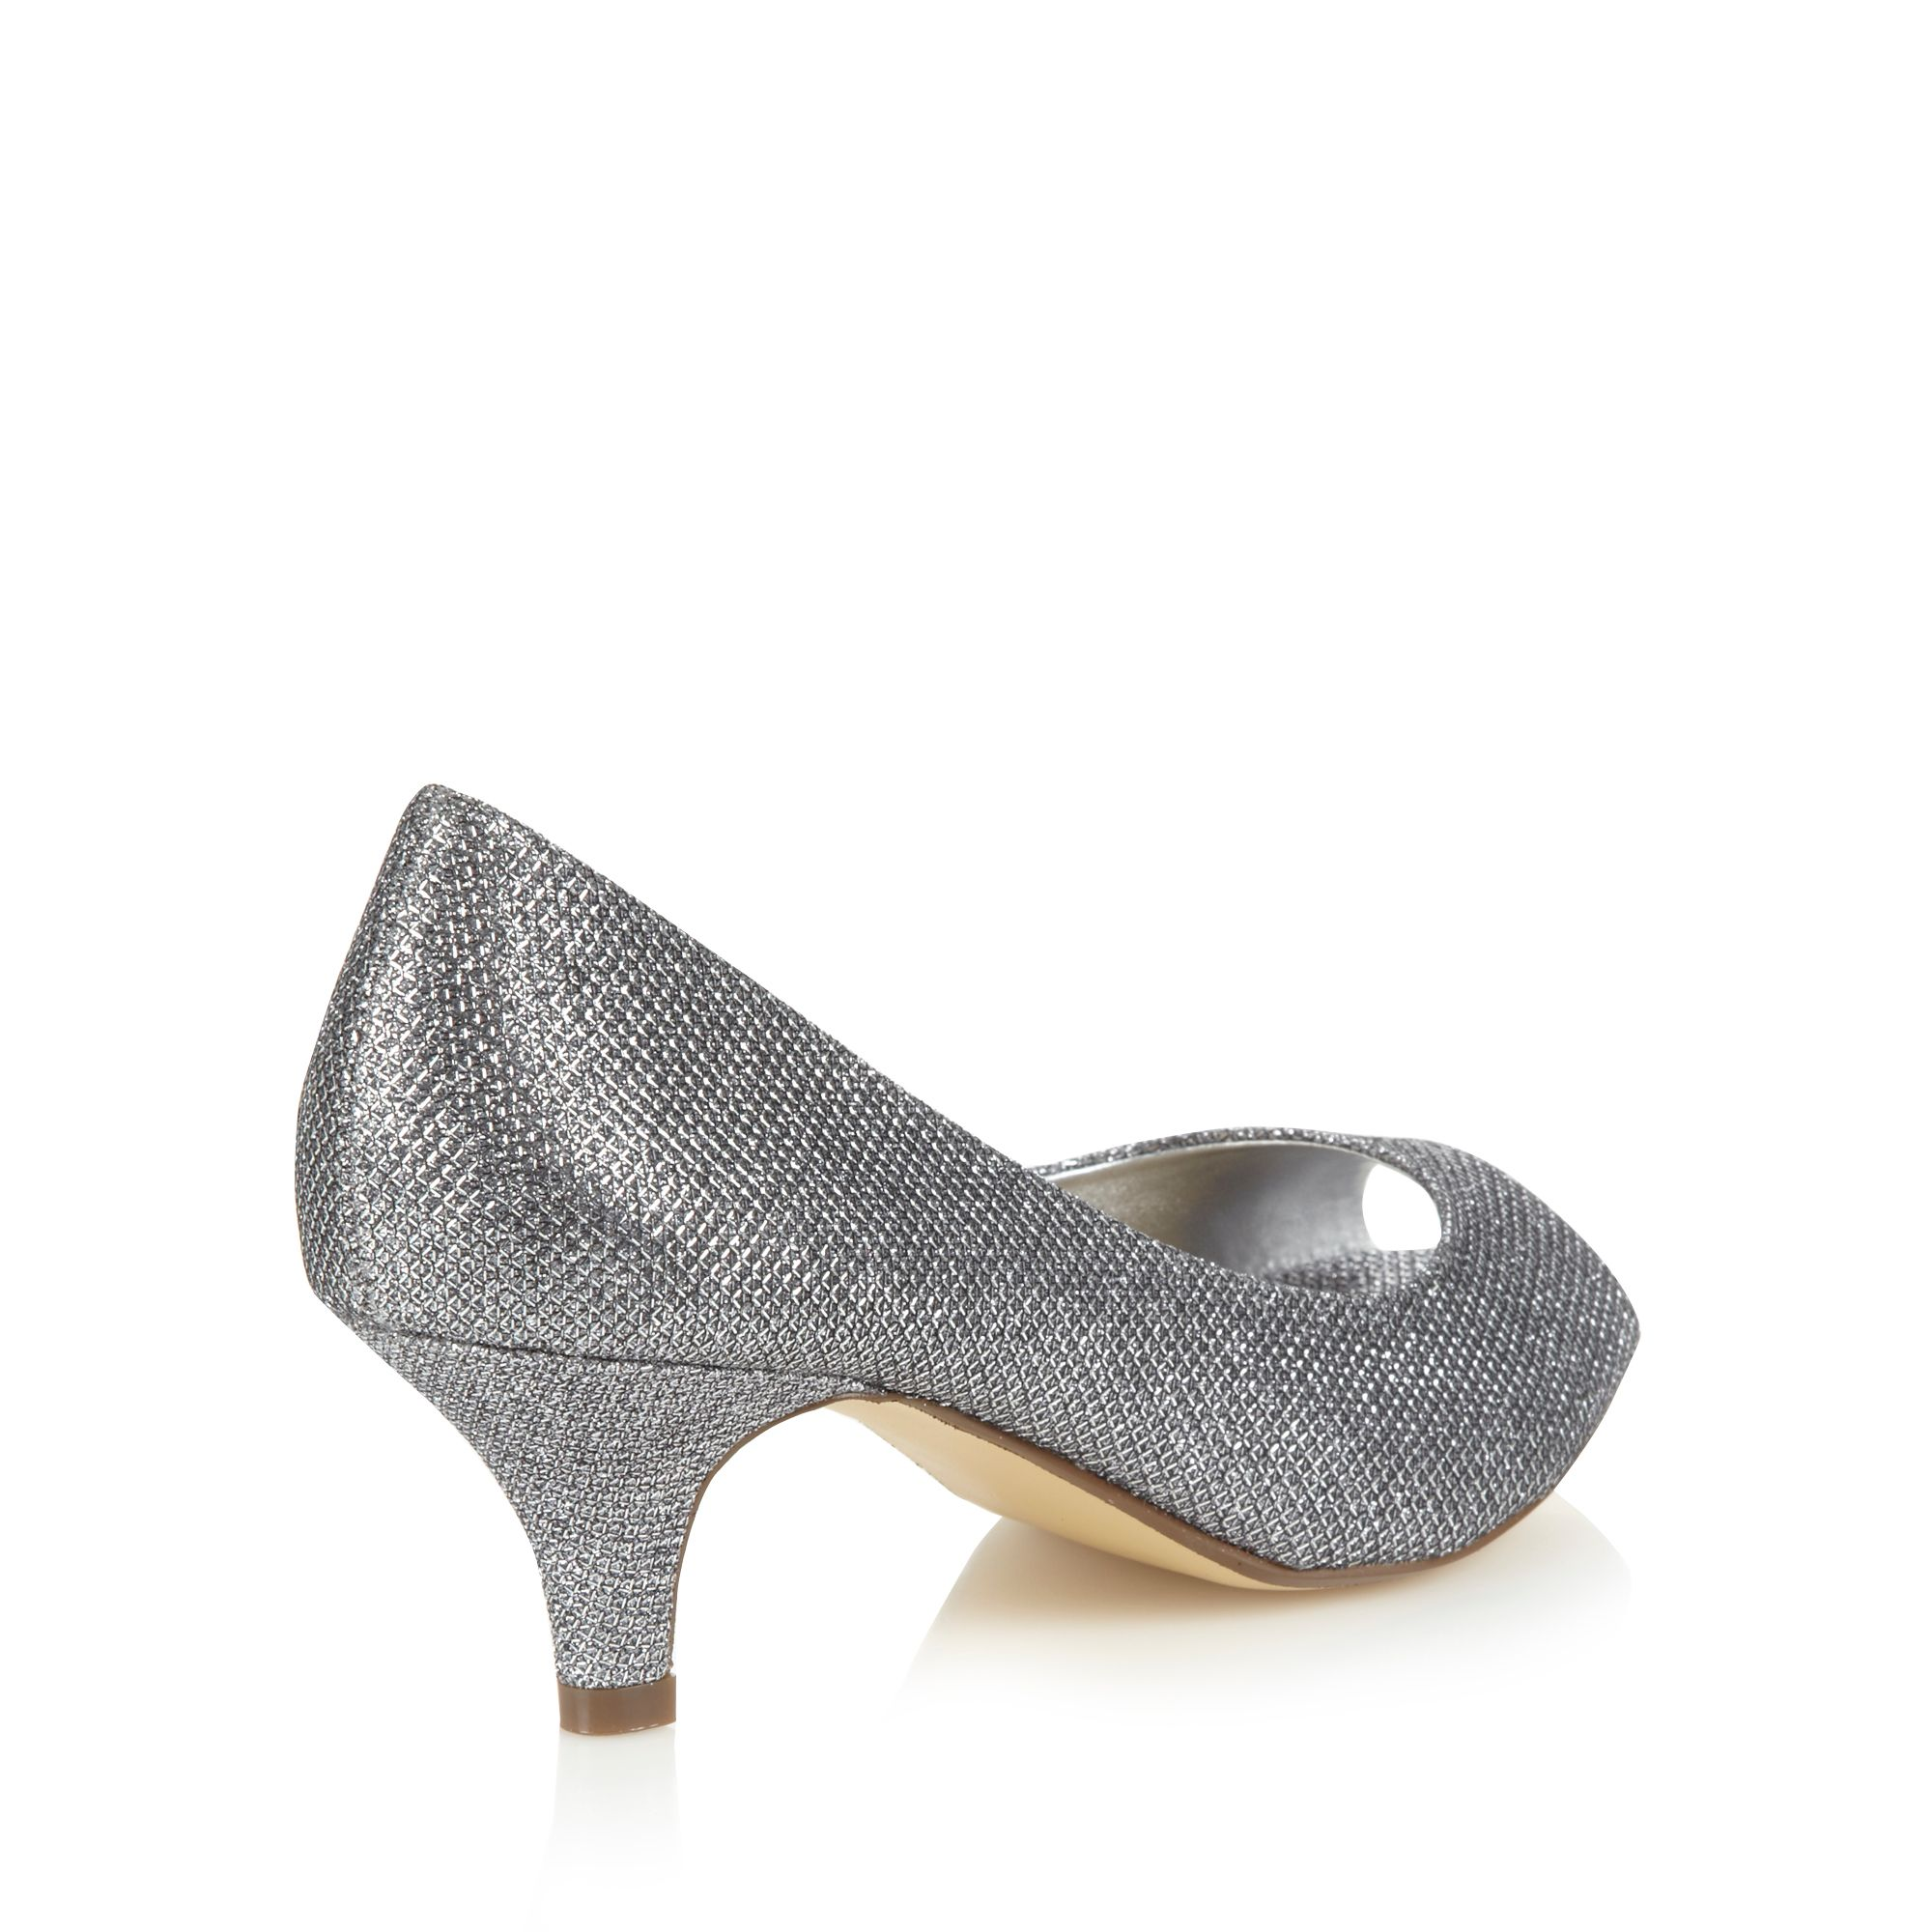 debut womens silver glitter mid court shoes from debenhams